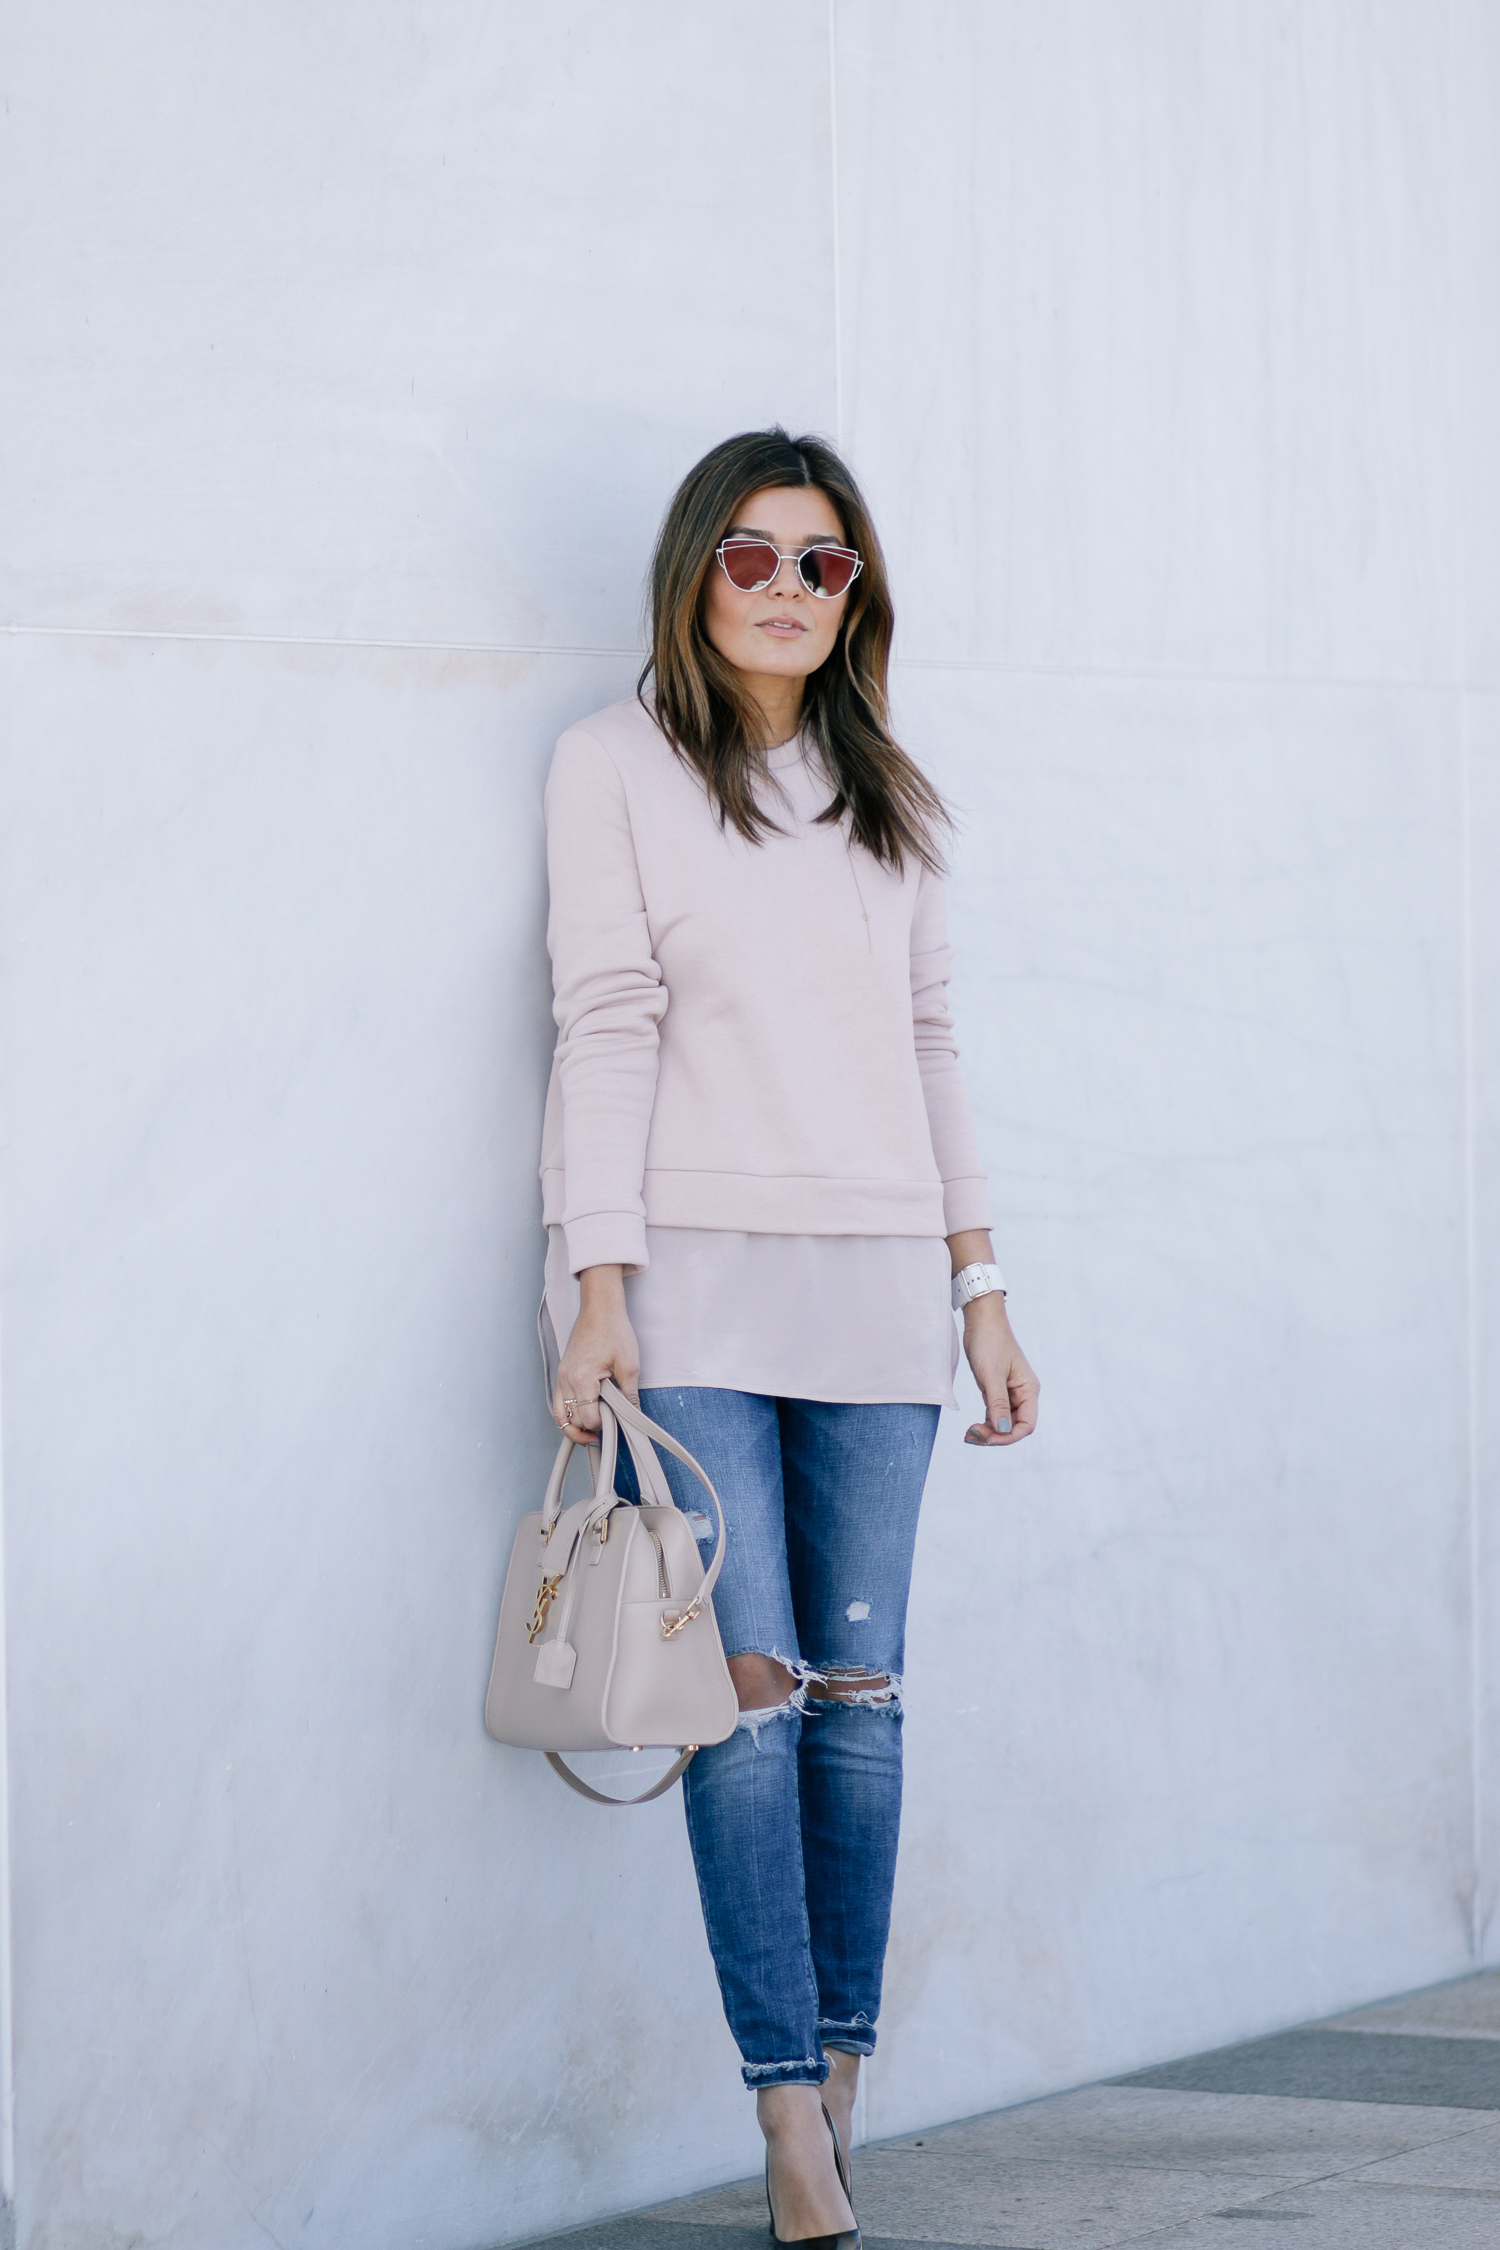 Blush Tones Look and YSL Tote